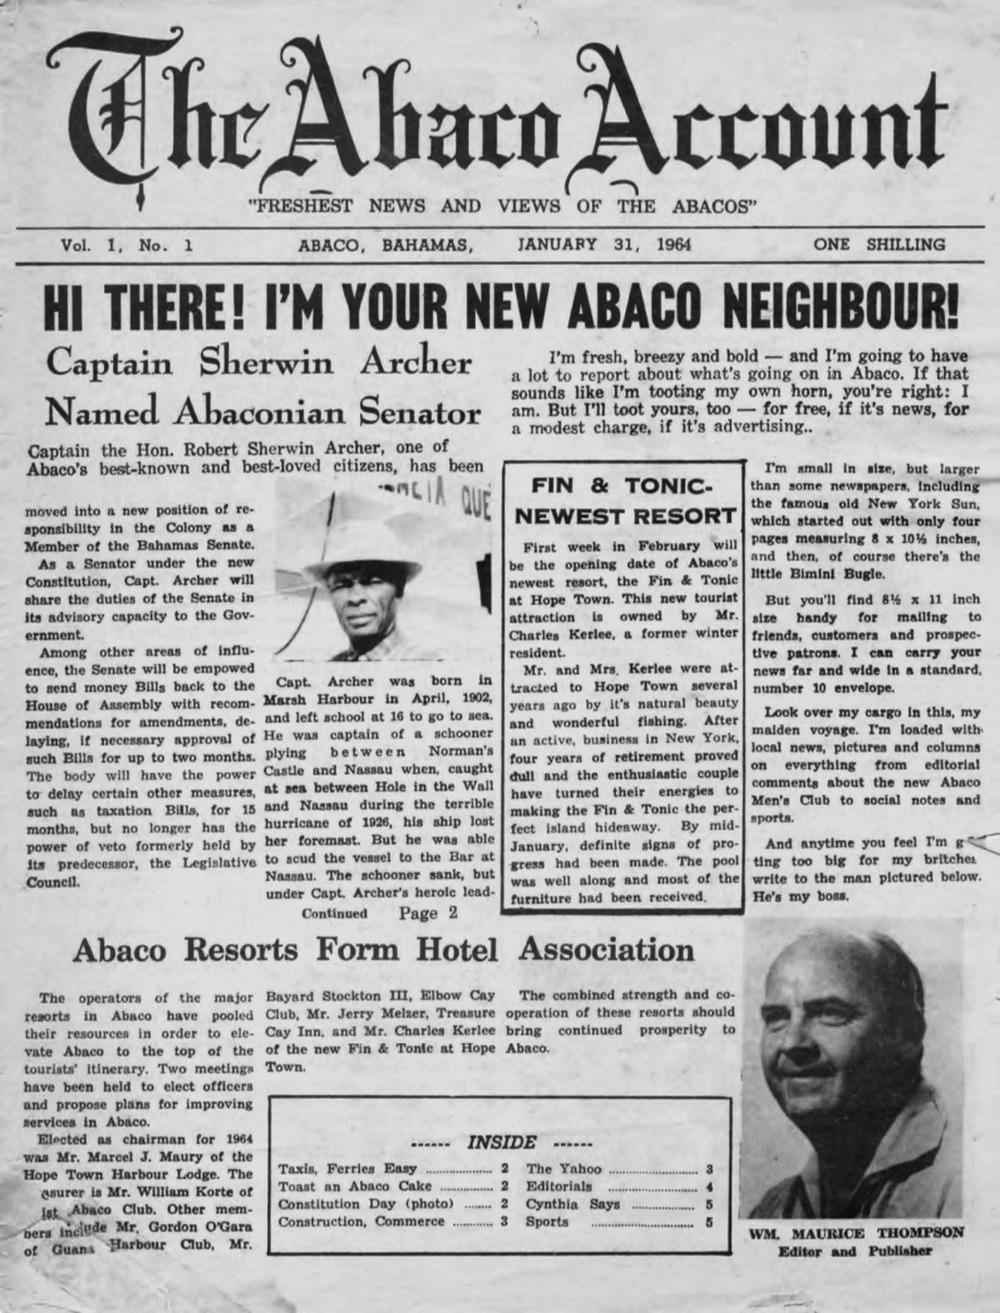 Abaco Account - Page 1